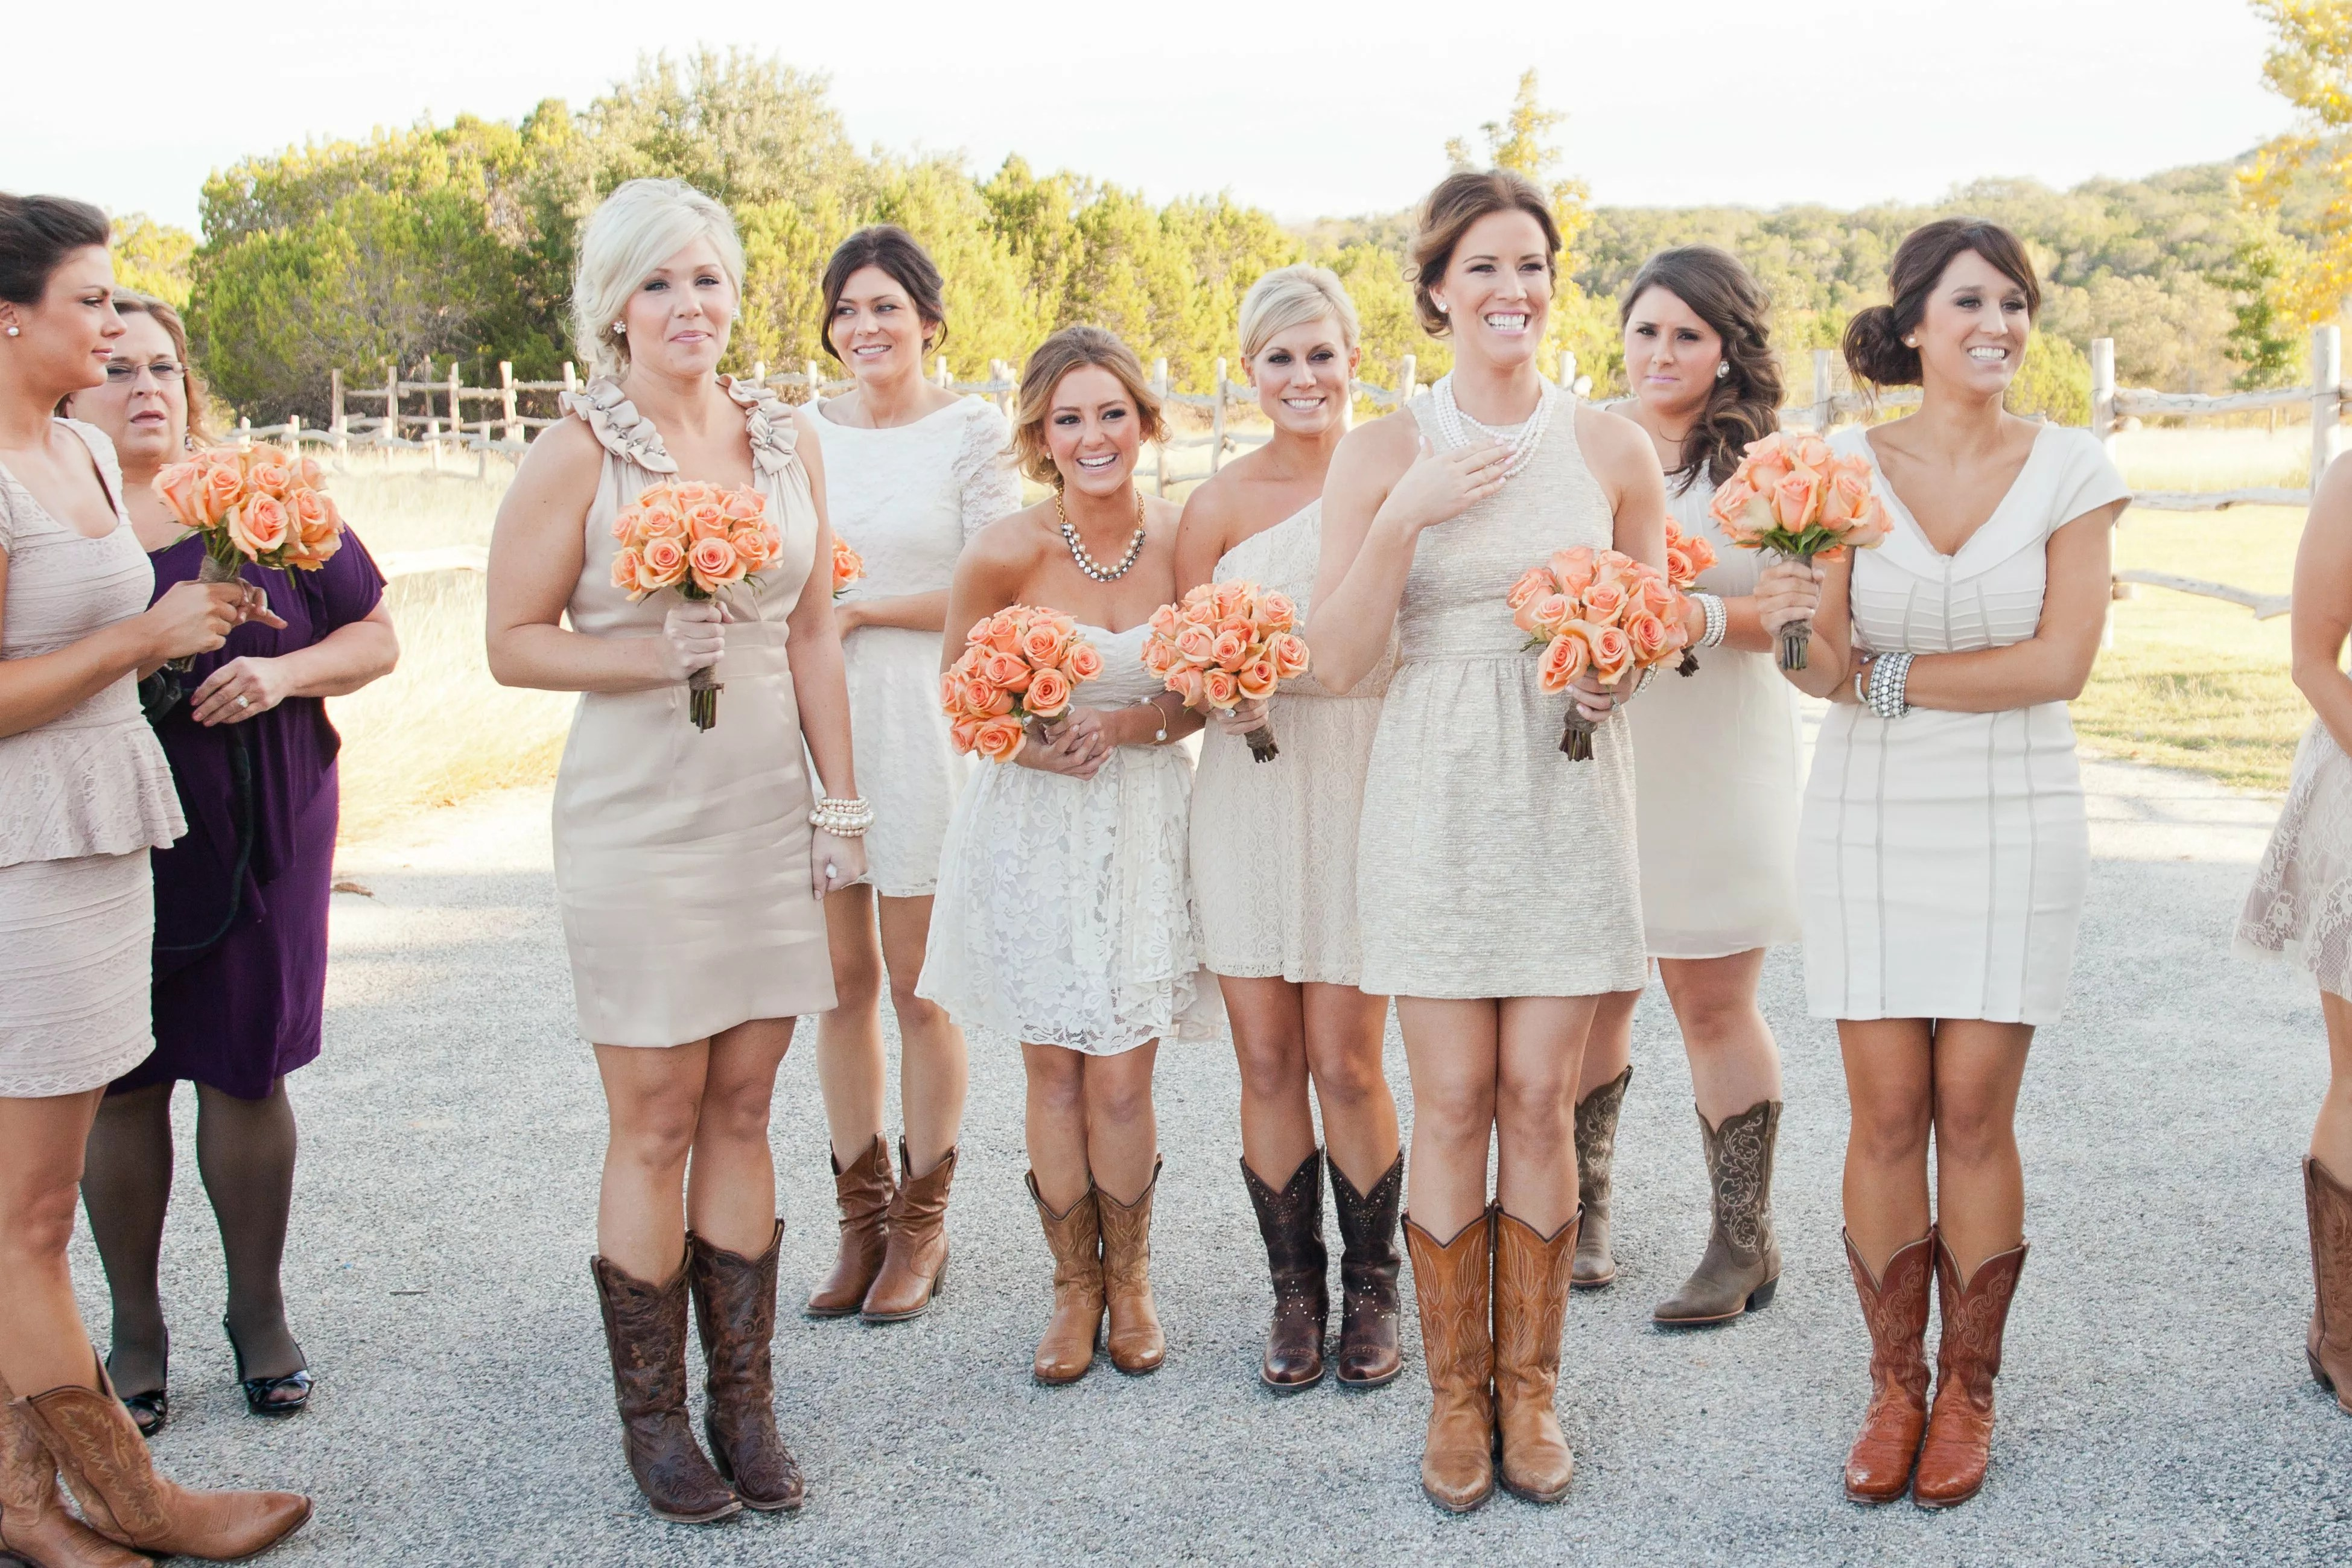 wedding guest dress with cowboy boots wedding cowboy boots Bridesmaid Wedding Guest Dress With Cowboy Boots